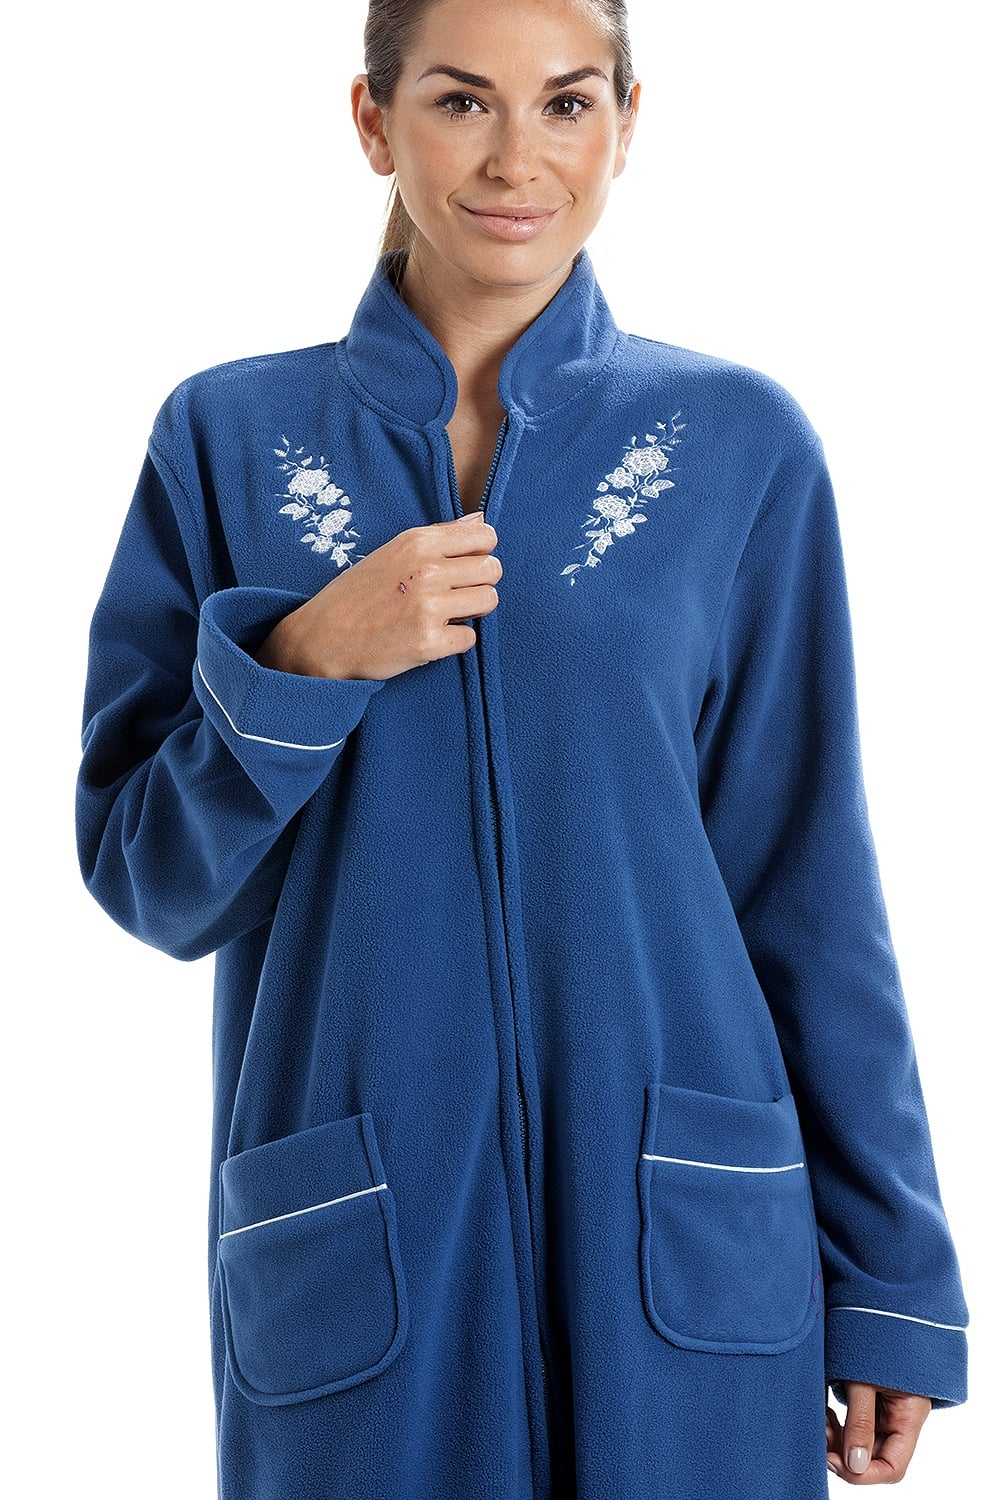 5b0cdd50df Soft Warm Fleece Blue Zip Up Front Housecoat